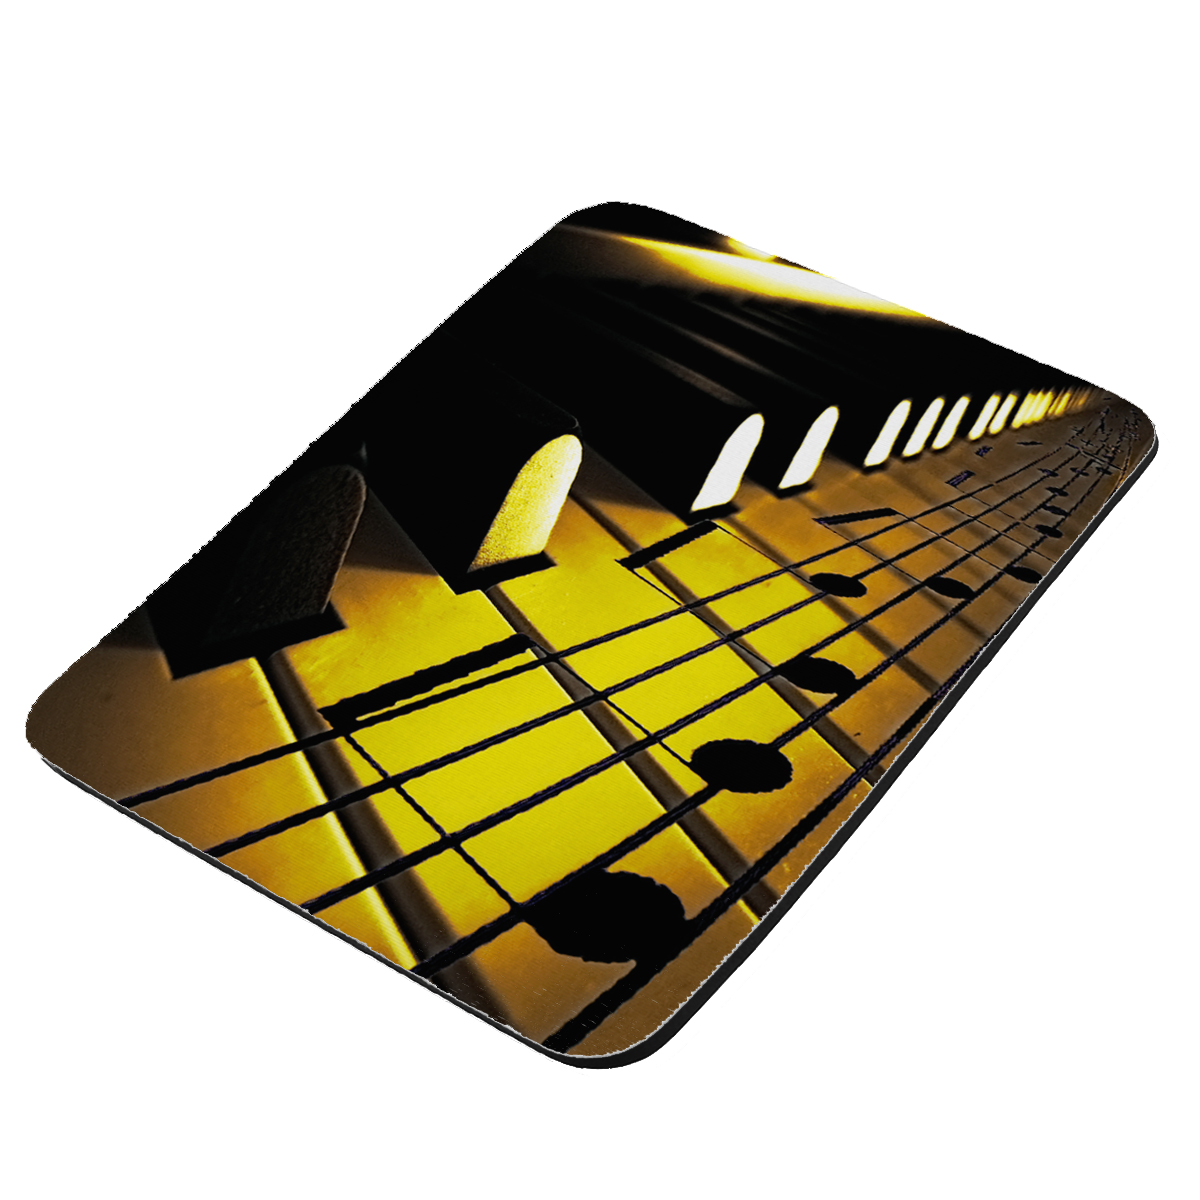 Sheet Music On Piano Keys - KuzmarK Mousepad / Hot Pad / Trivet